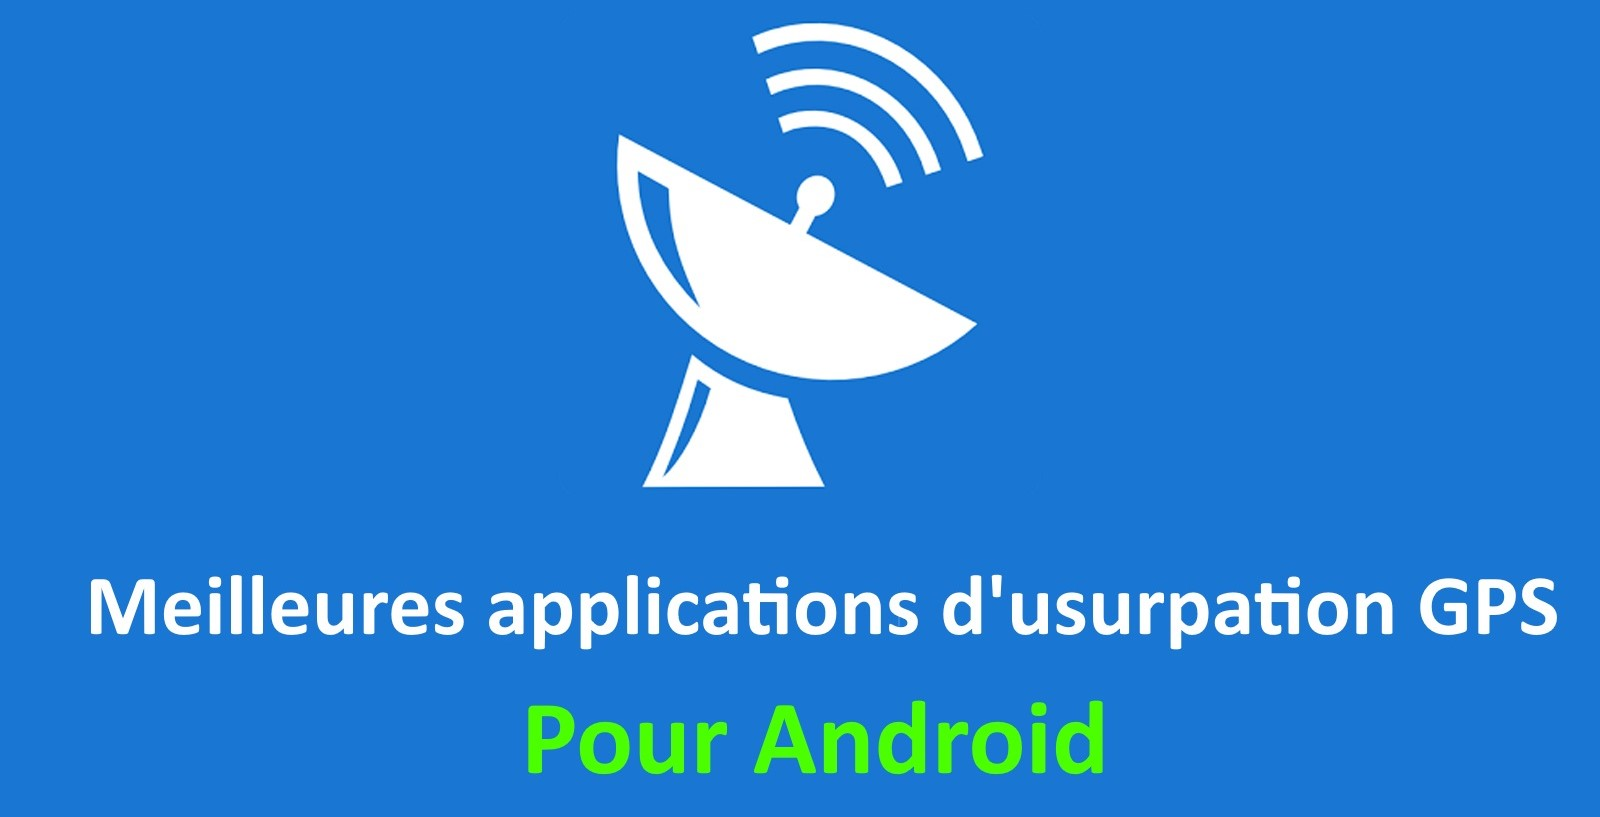 applications d'usurpation GPS